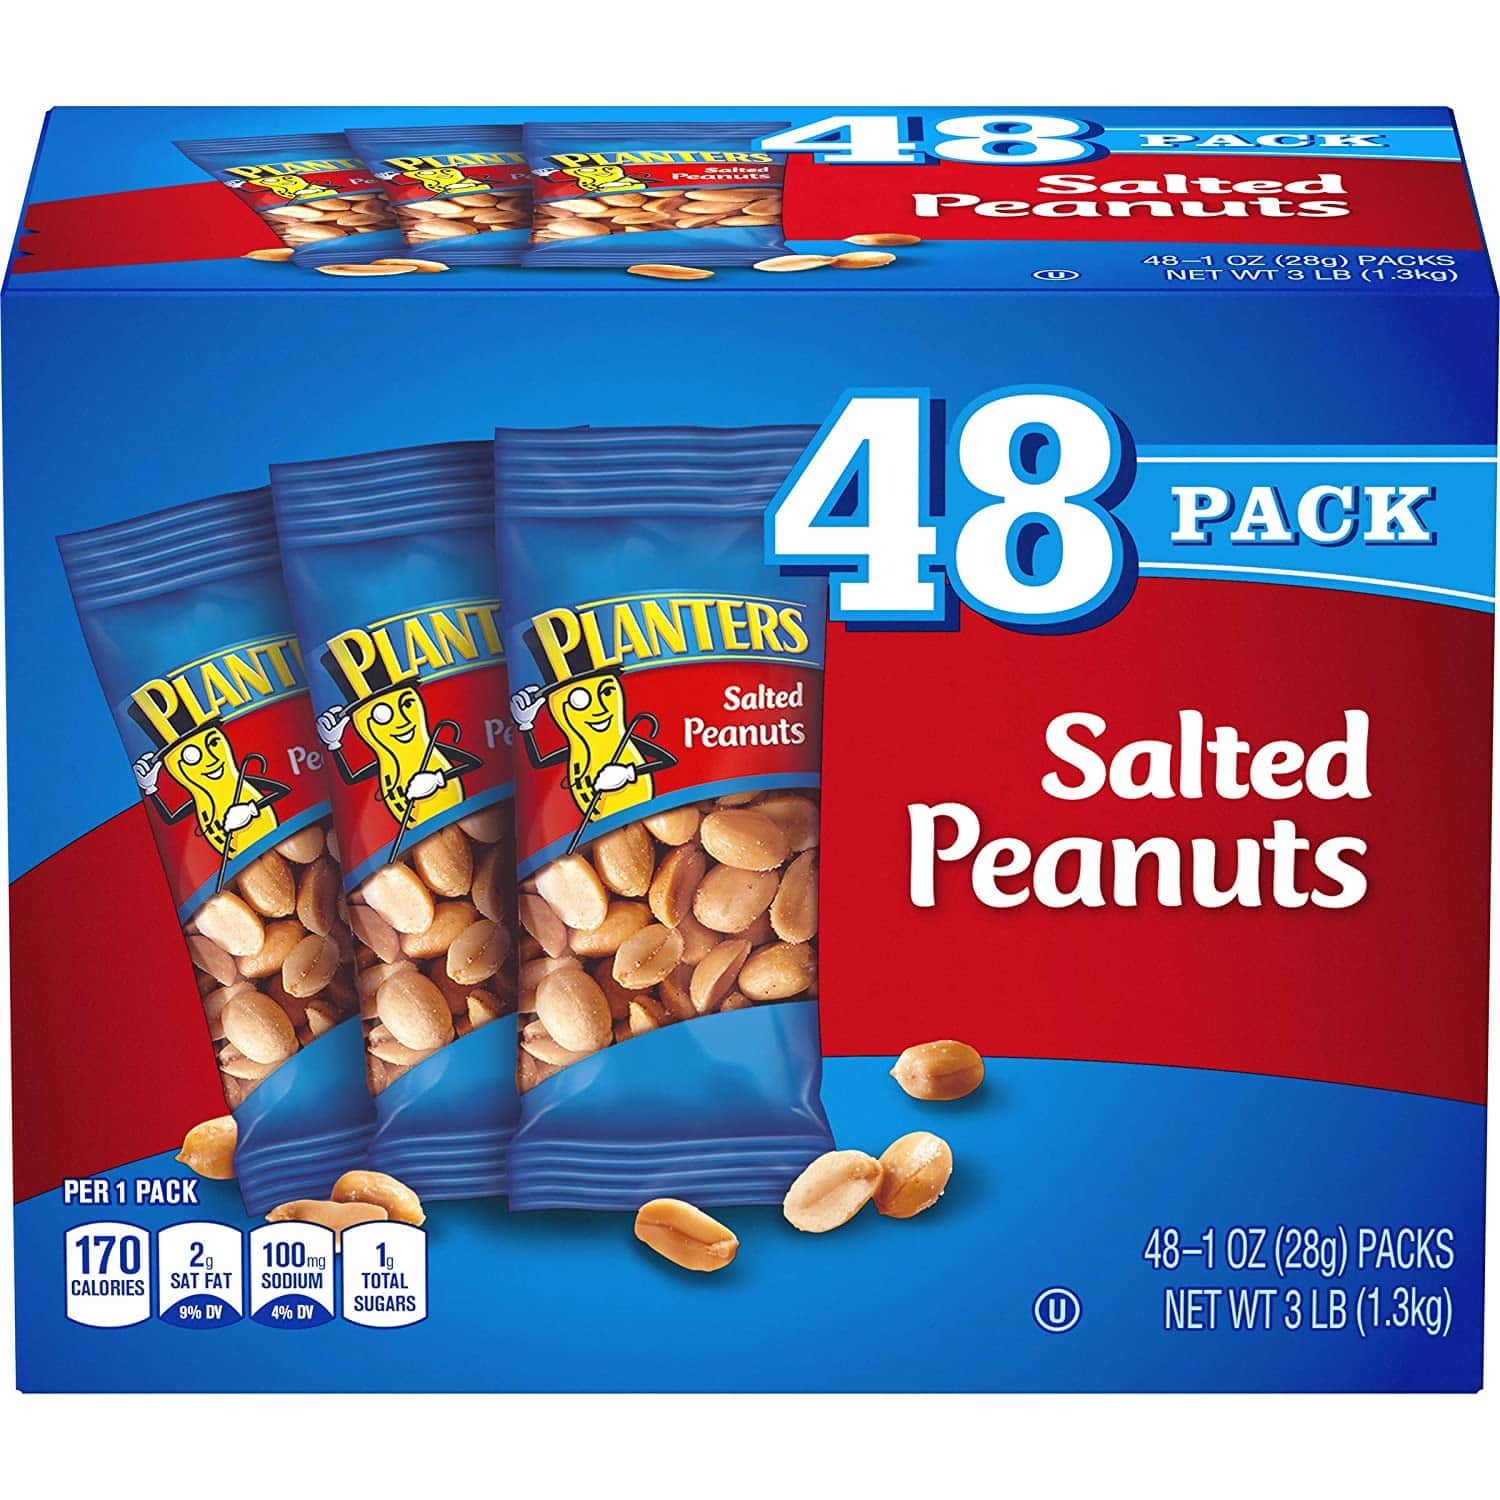 48-Ct. 1oz. Bags PLANTERS Salted Peanuts $7.11 5% w/s&s